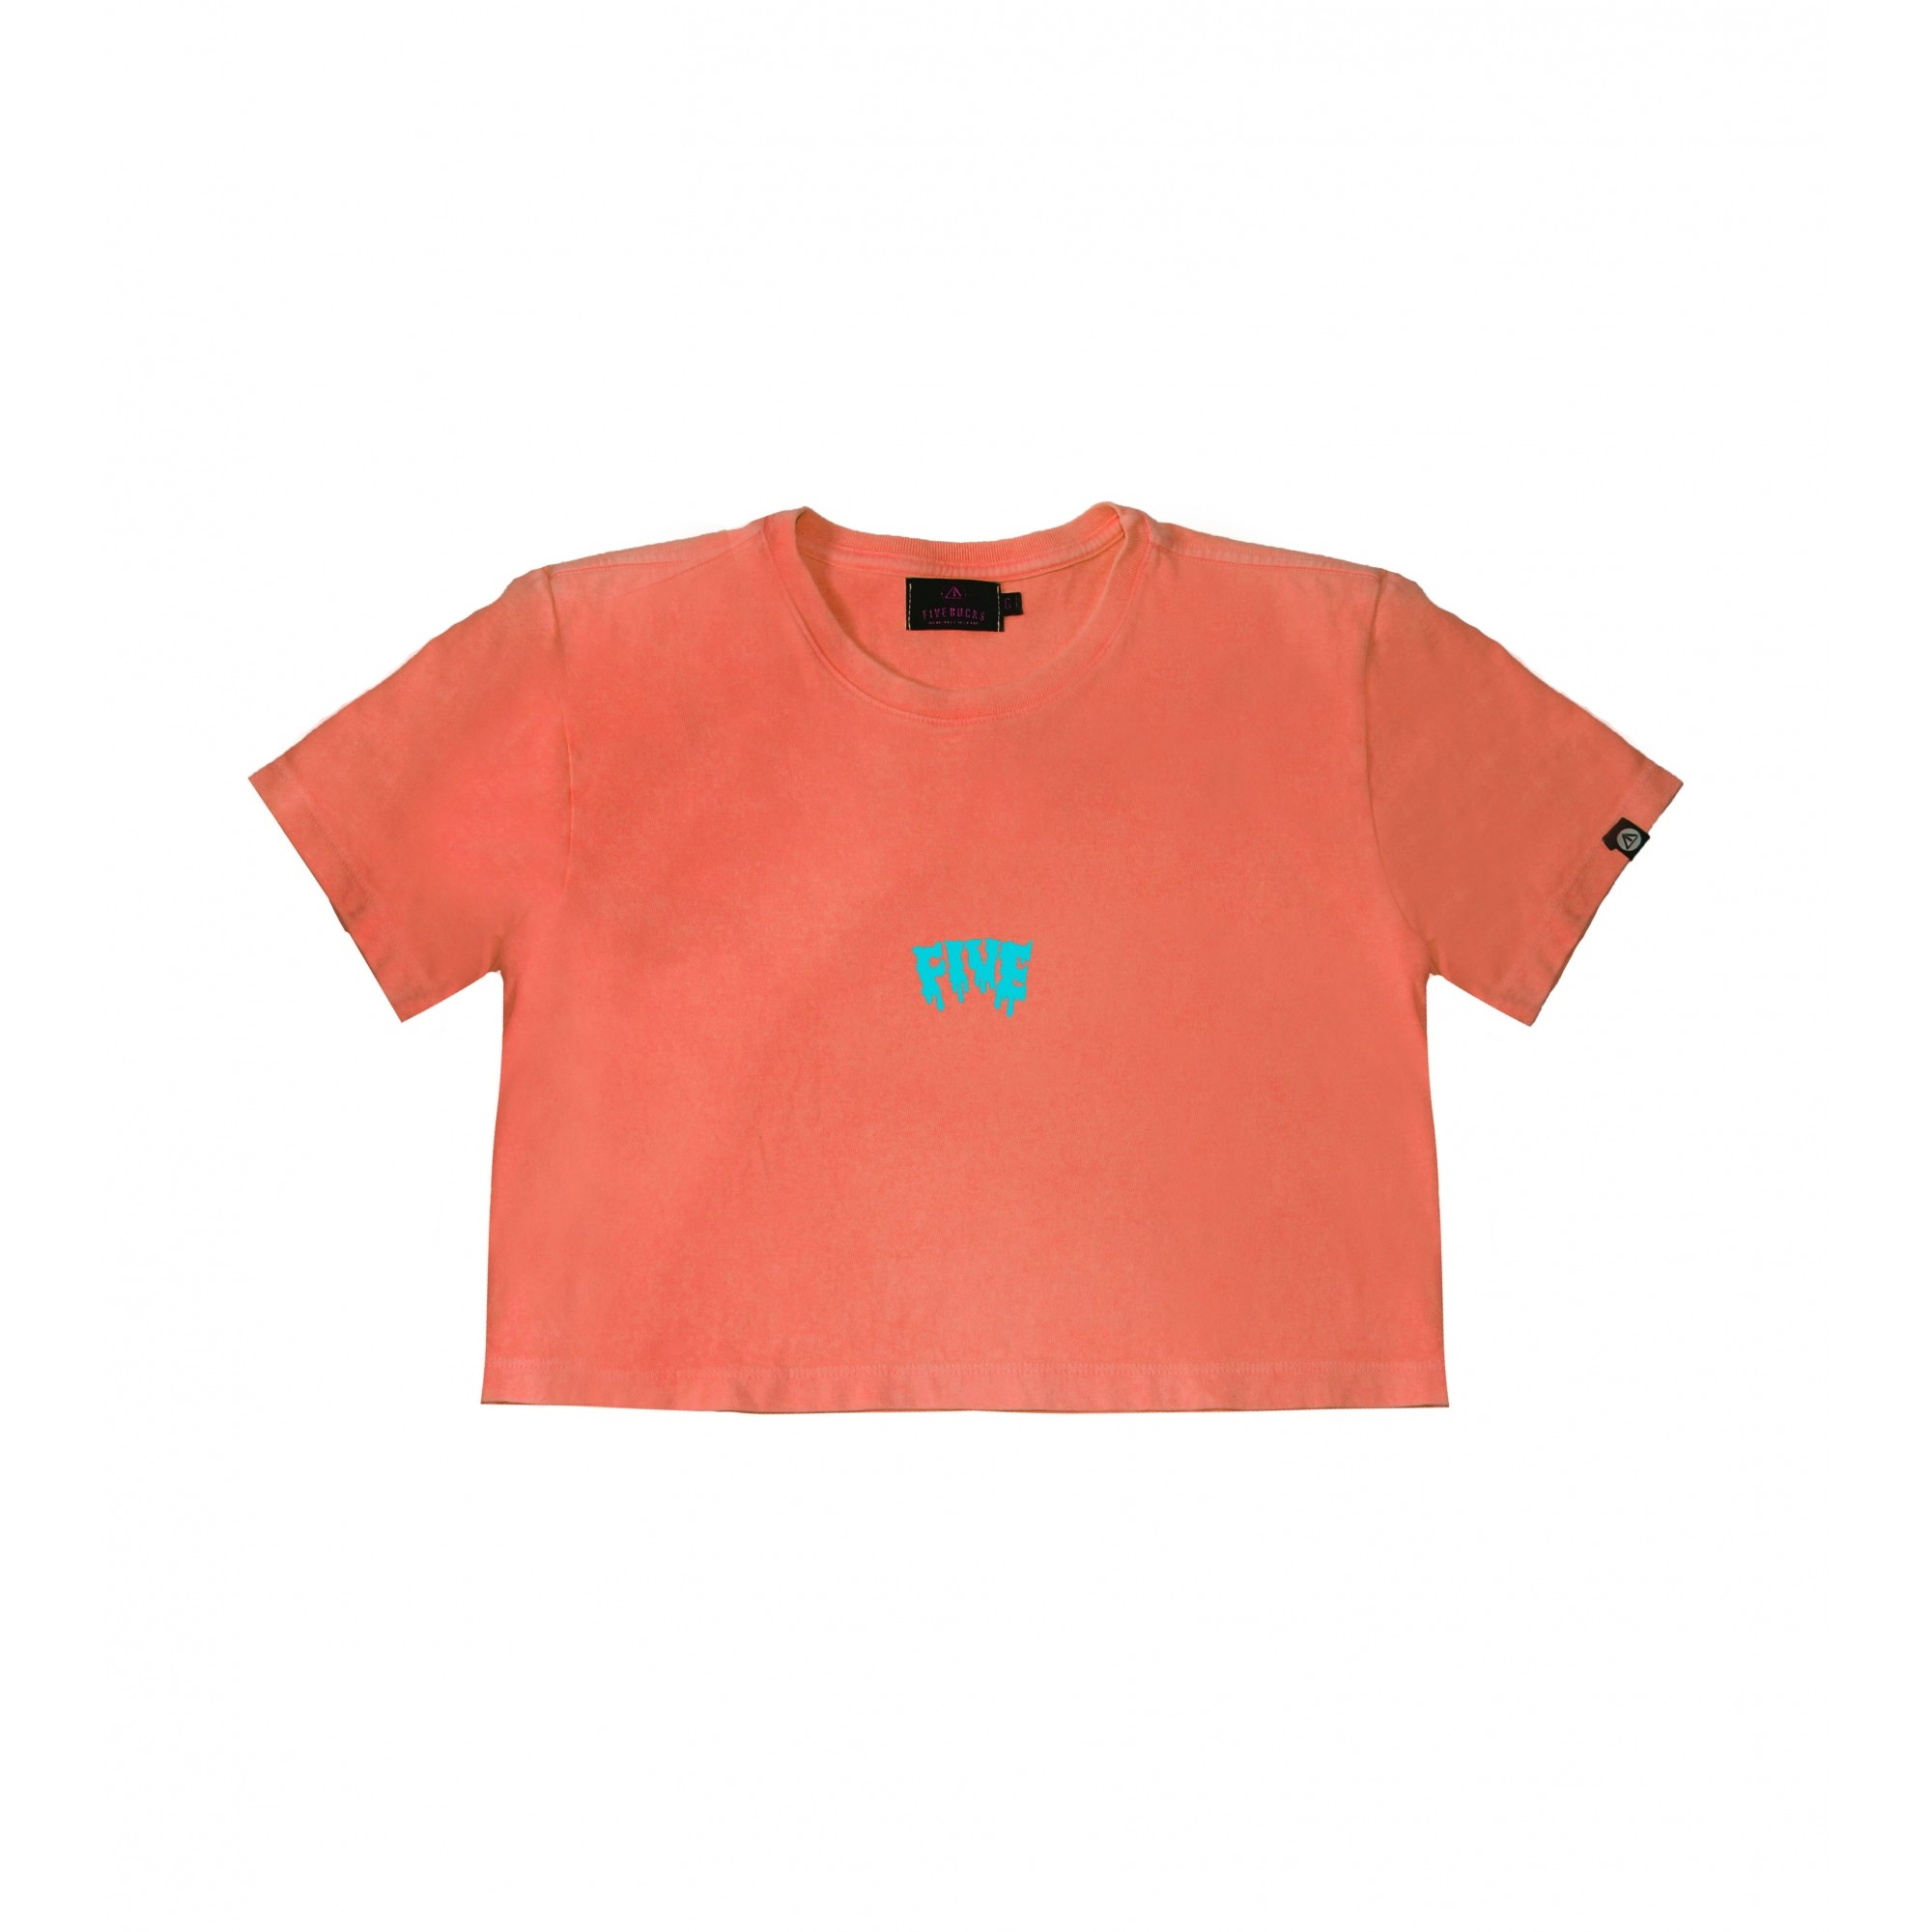 Cropped Melted Coral